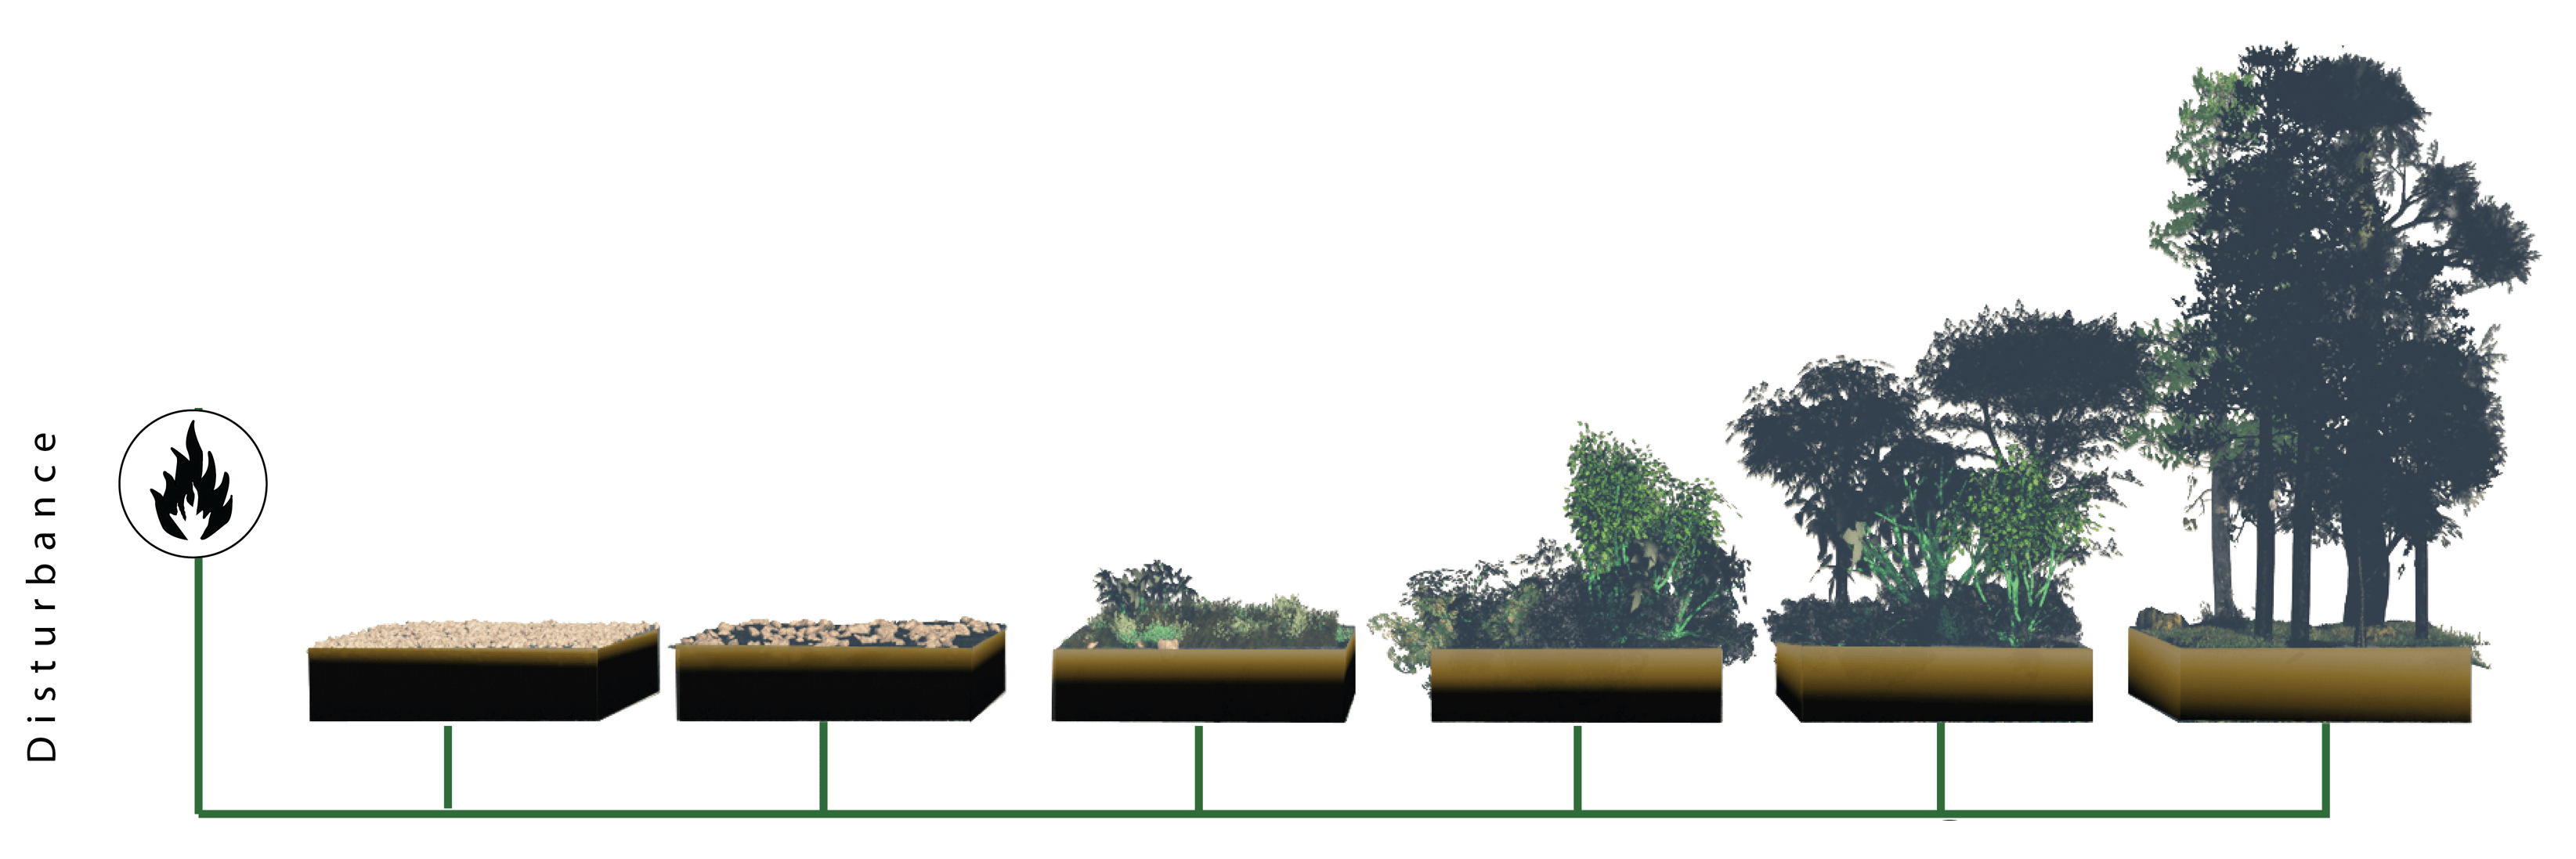 Ecological Succession On Bare Rock Ecological Succession